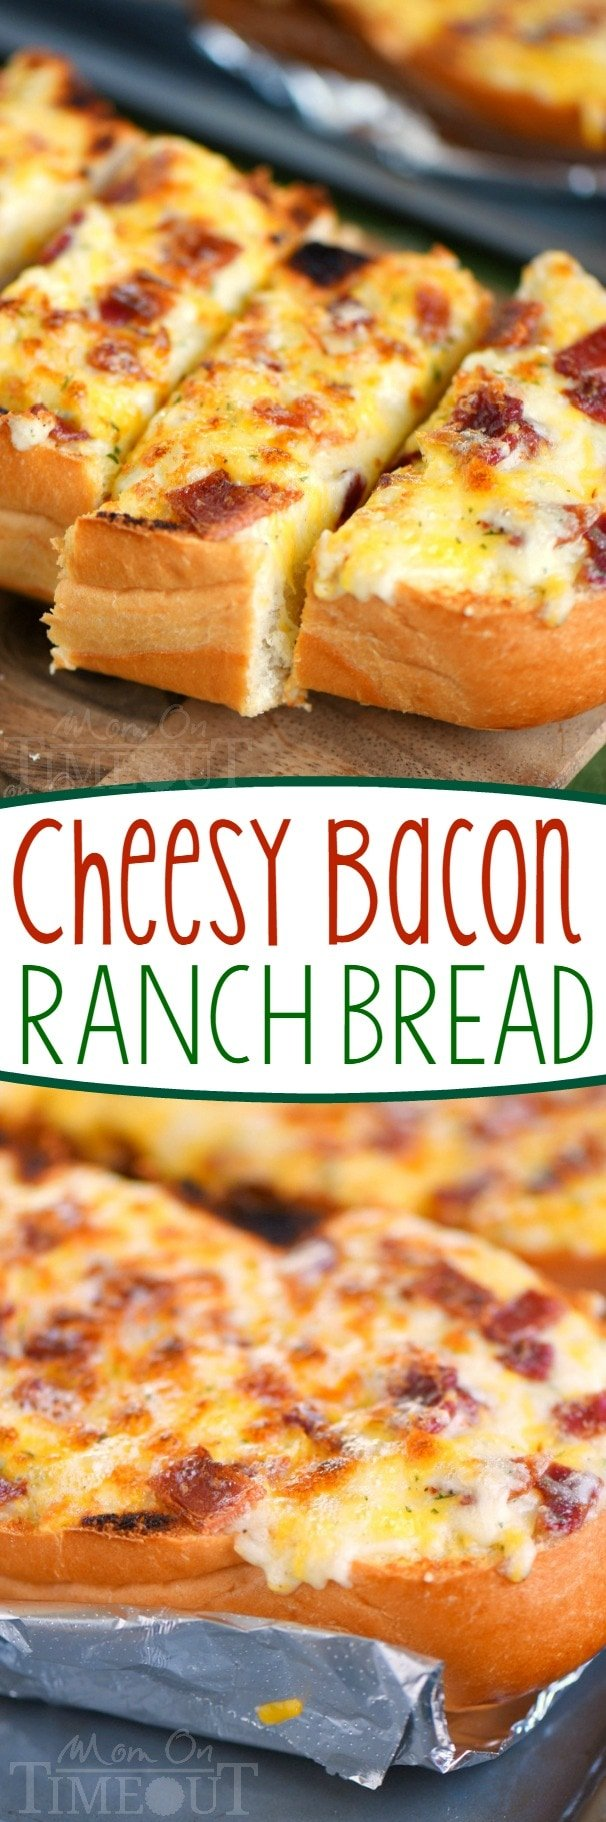 I've put all your favorites together in this fantastic and easy Cheesy Bacon Ranch Bread! Make it in the oven or on grill - it's your choice! A tasty addition to any meal!